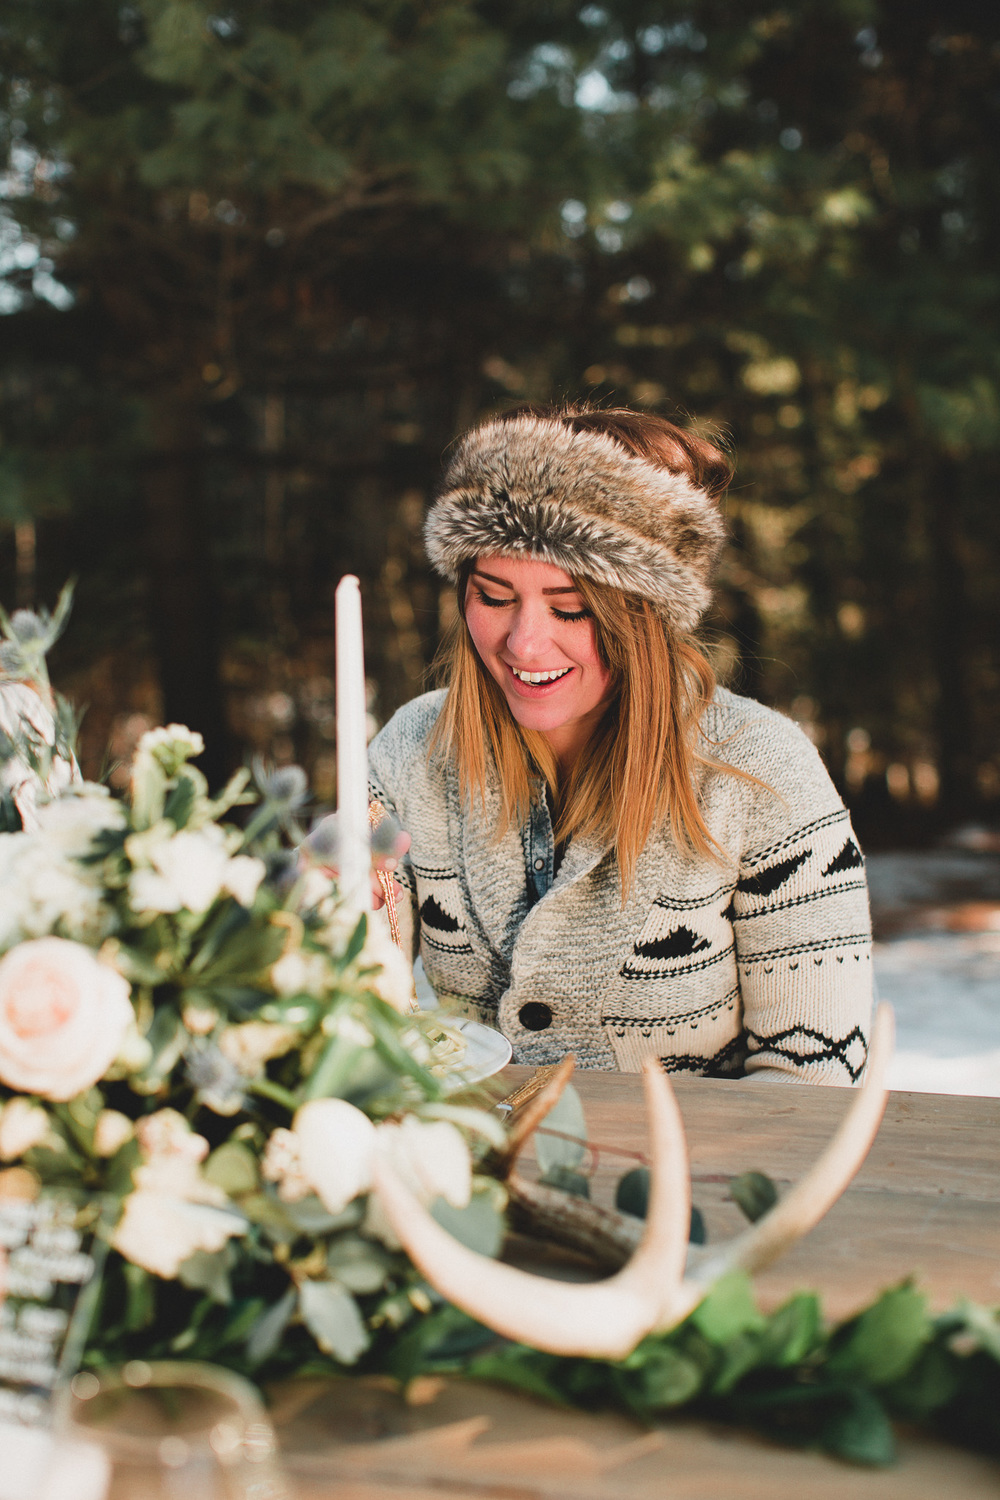 Brittany Frid, Satin & Snow, Wedding Planner and Design